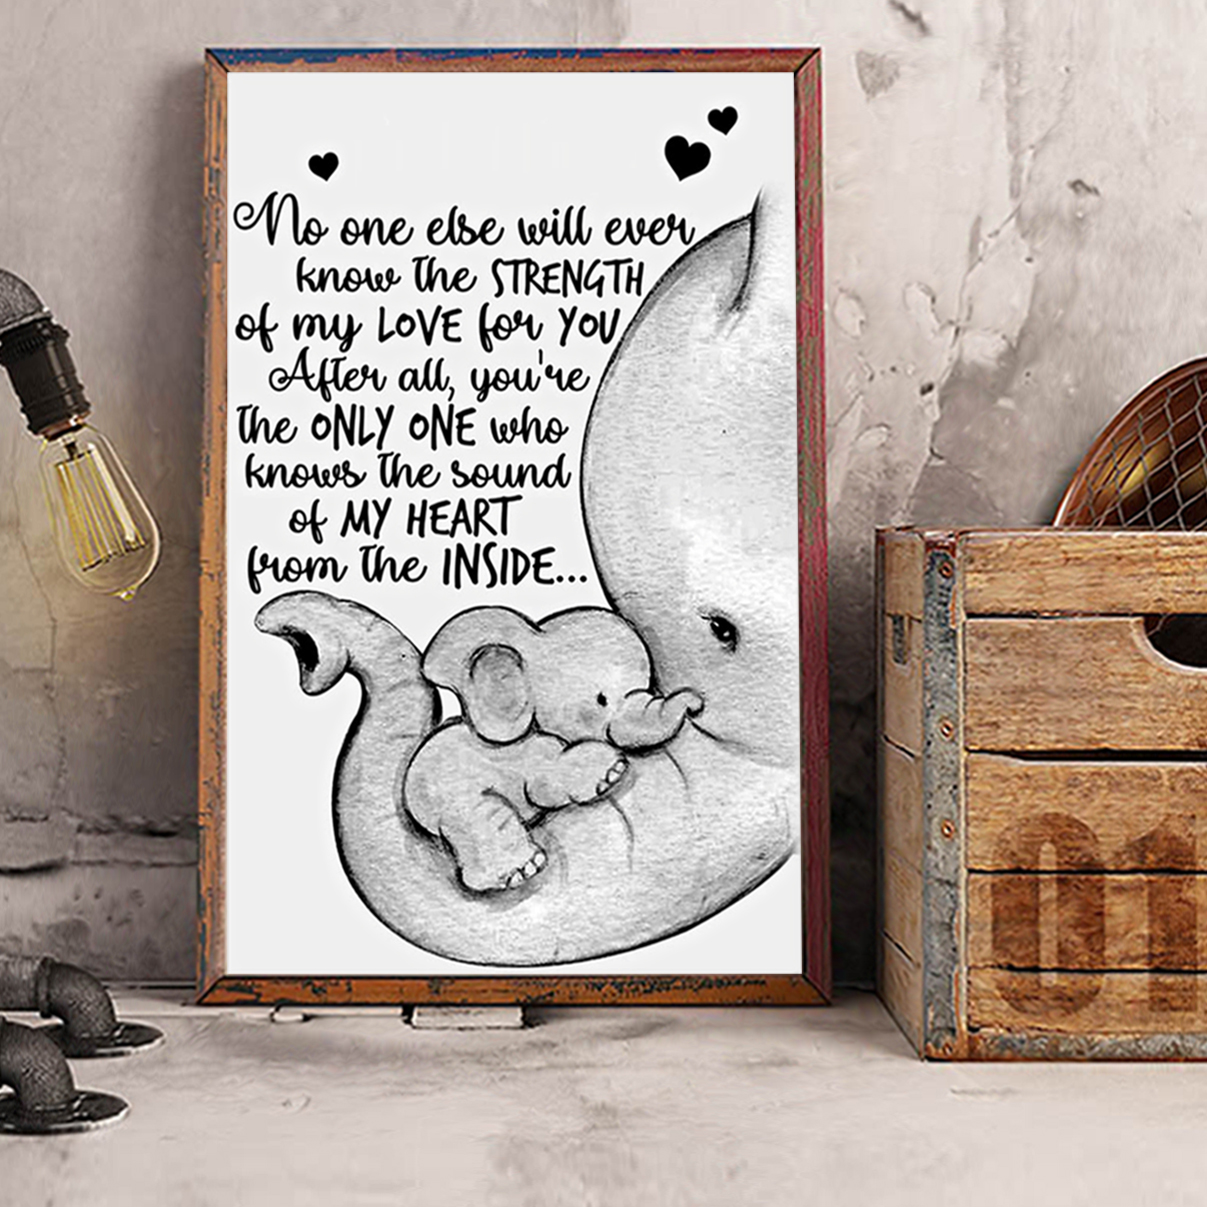 Personalized elephant no one else will ever know the strength poster A1